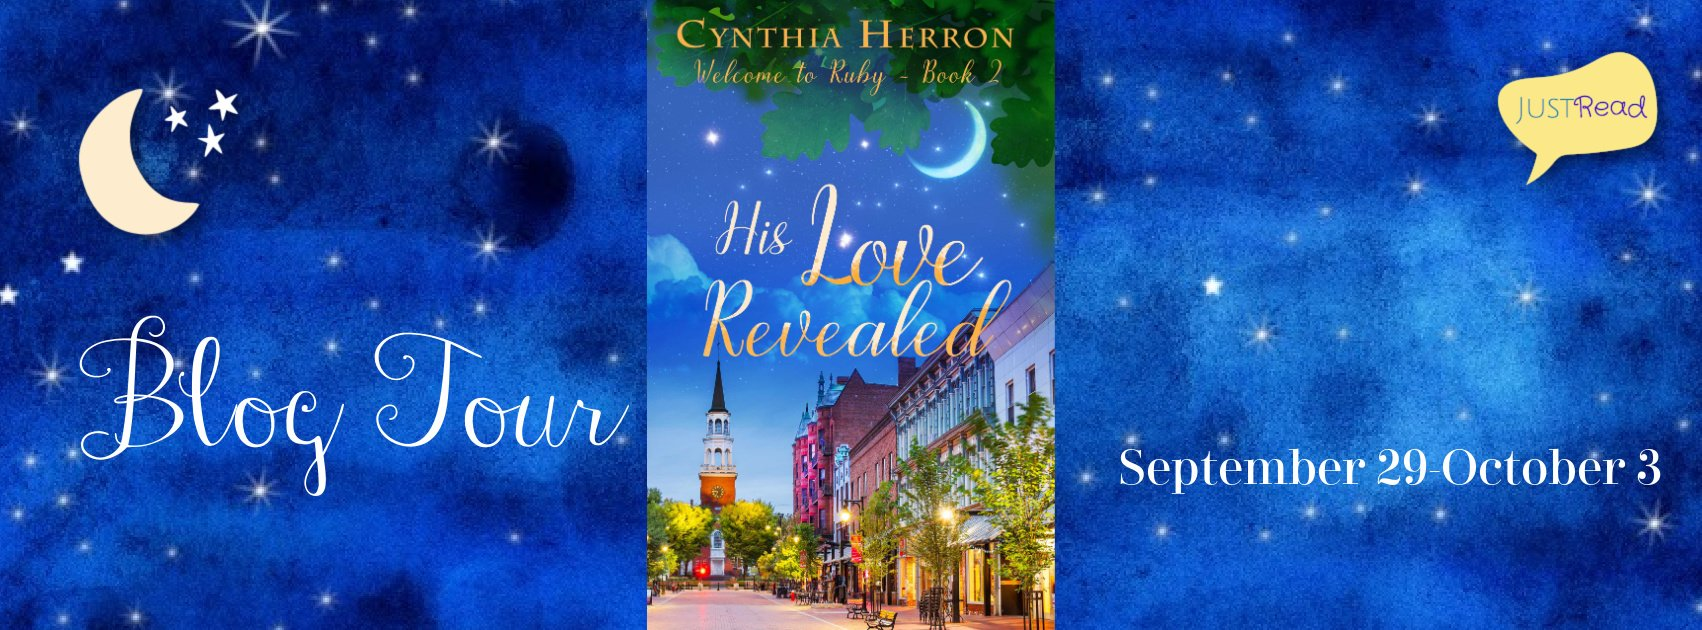 His Love Revealed JustRead Blog Tour